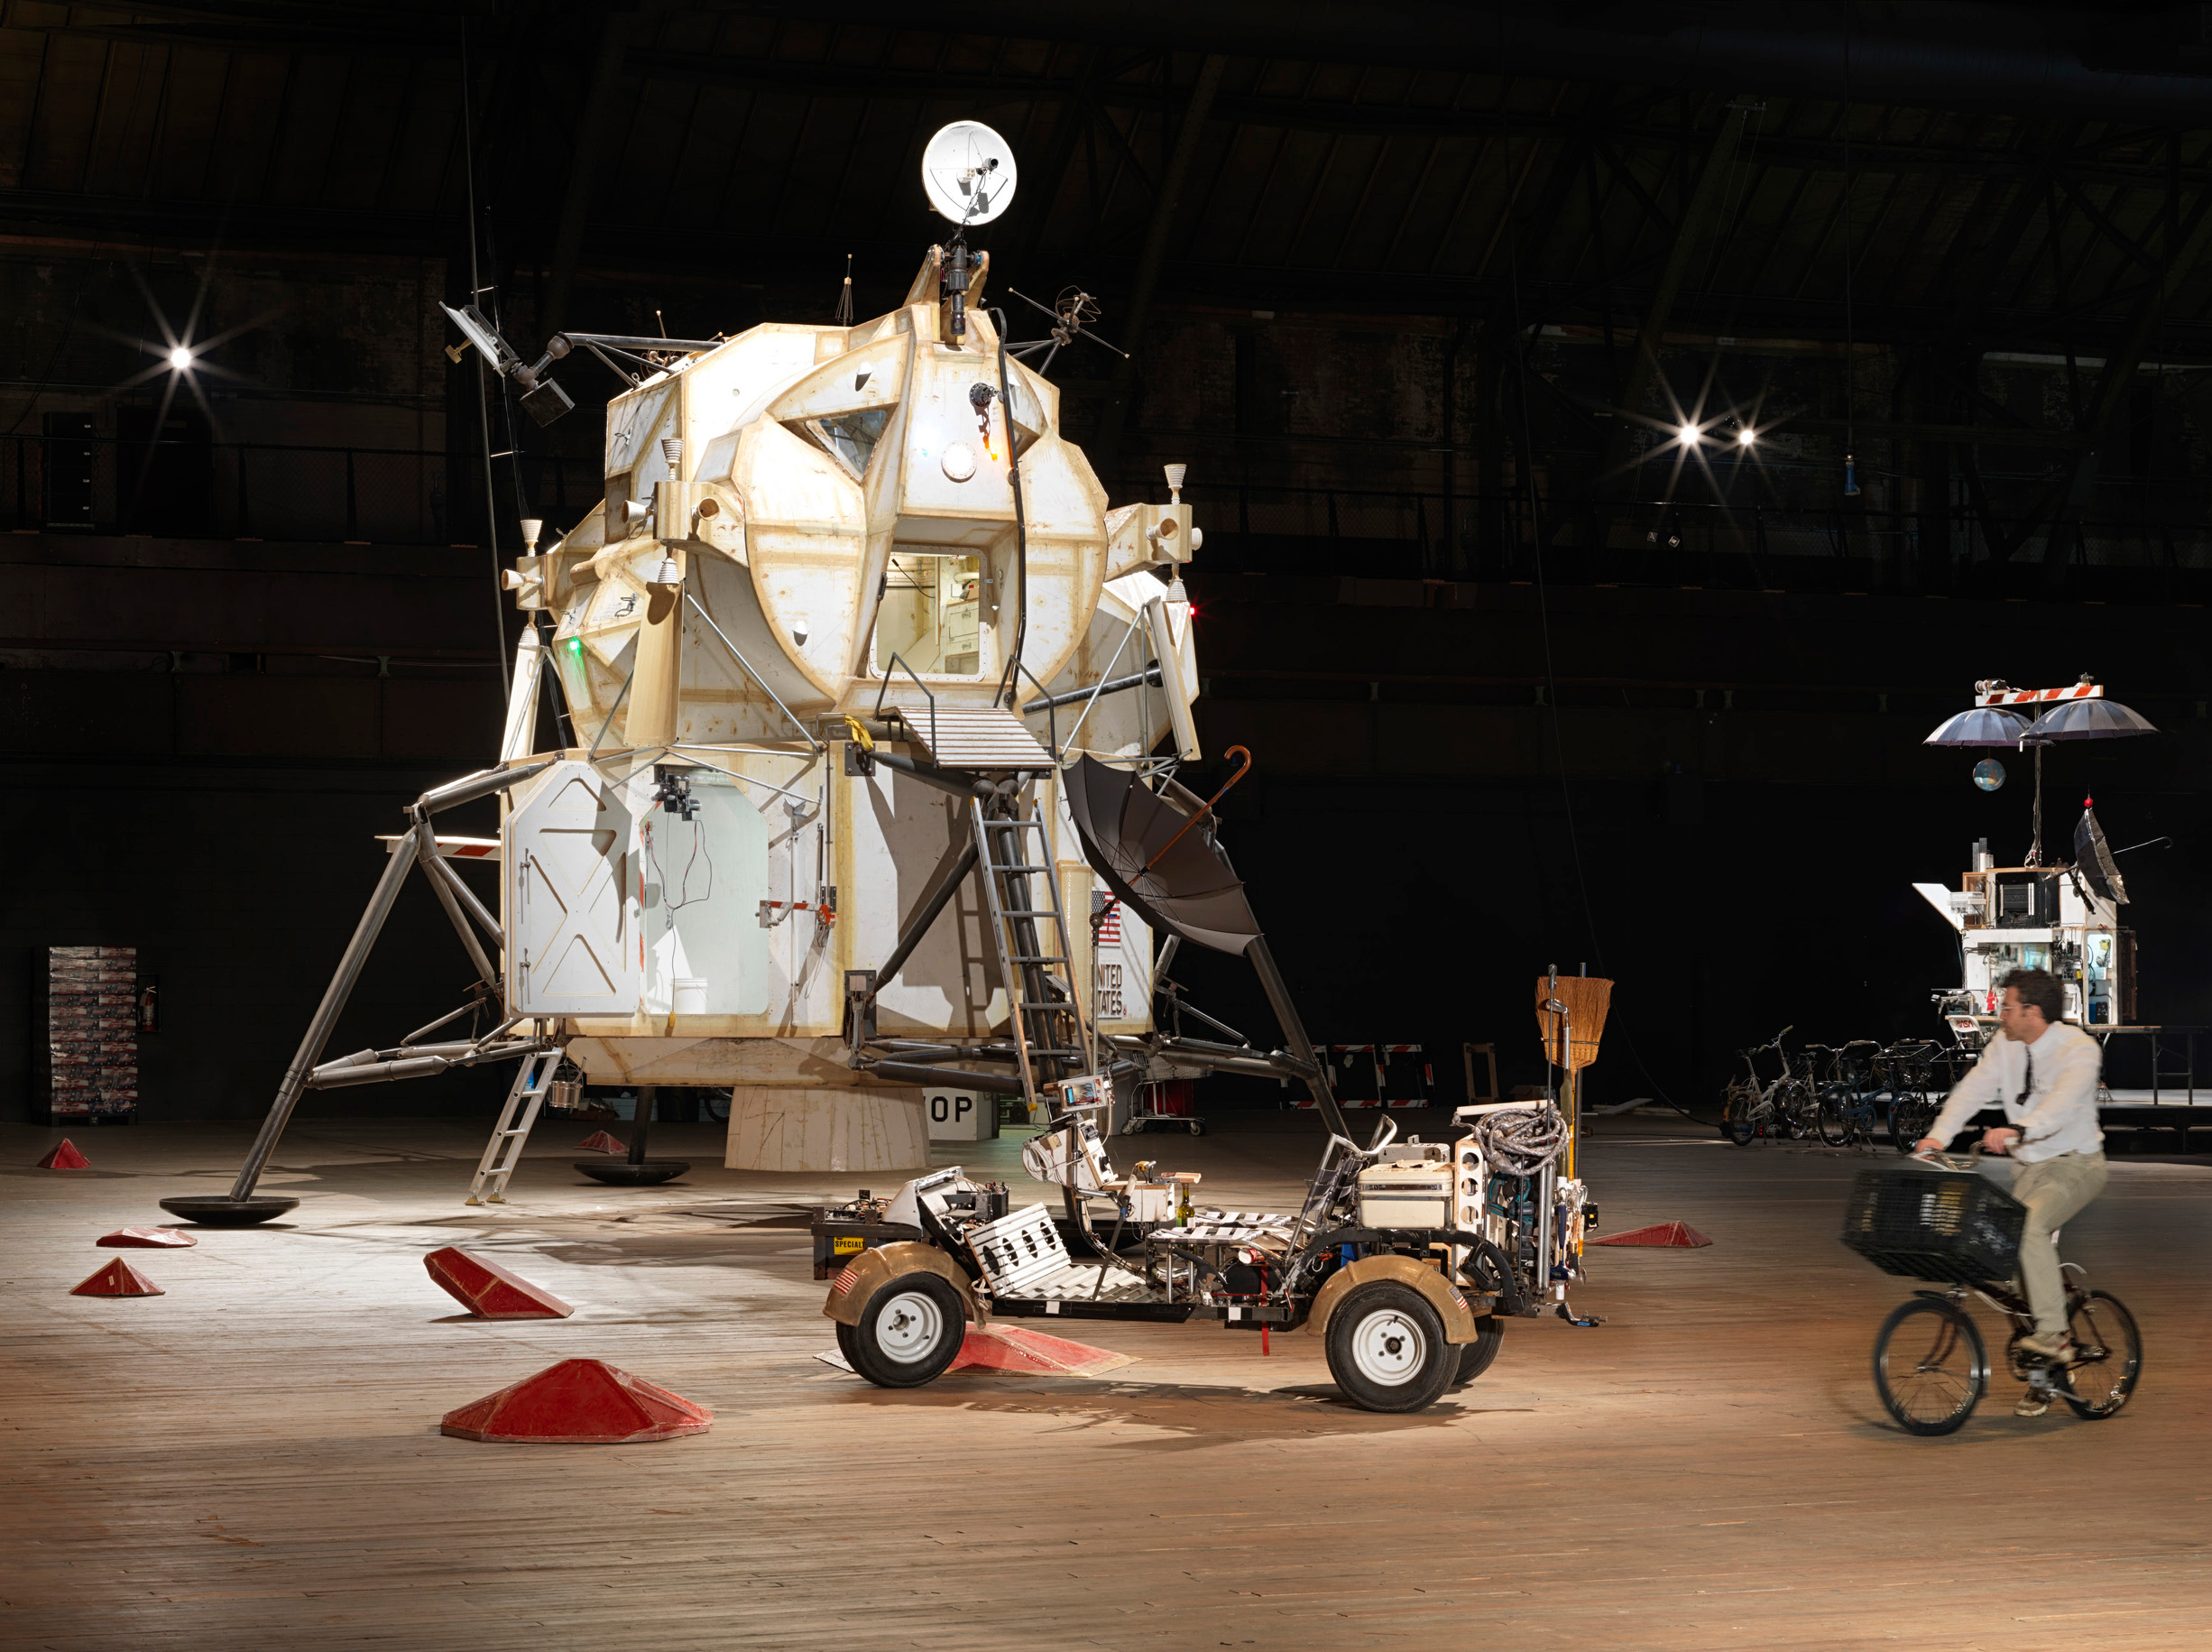 Tom Sachs on WAR Bike in